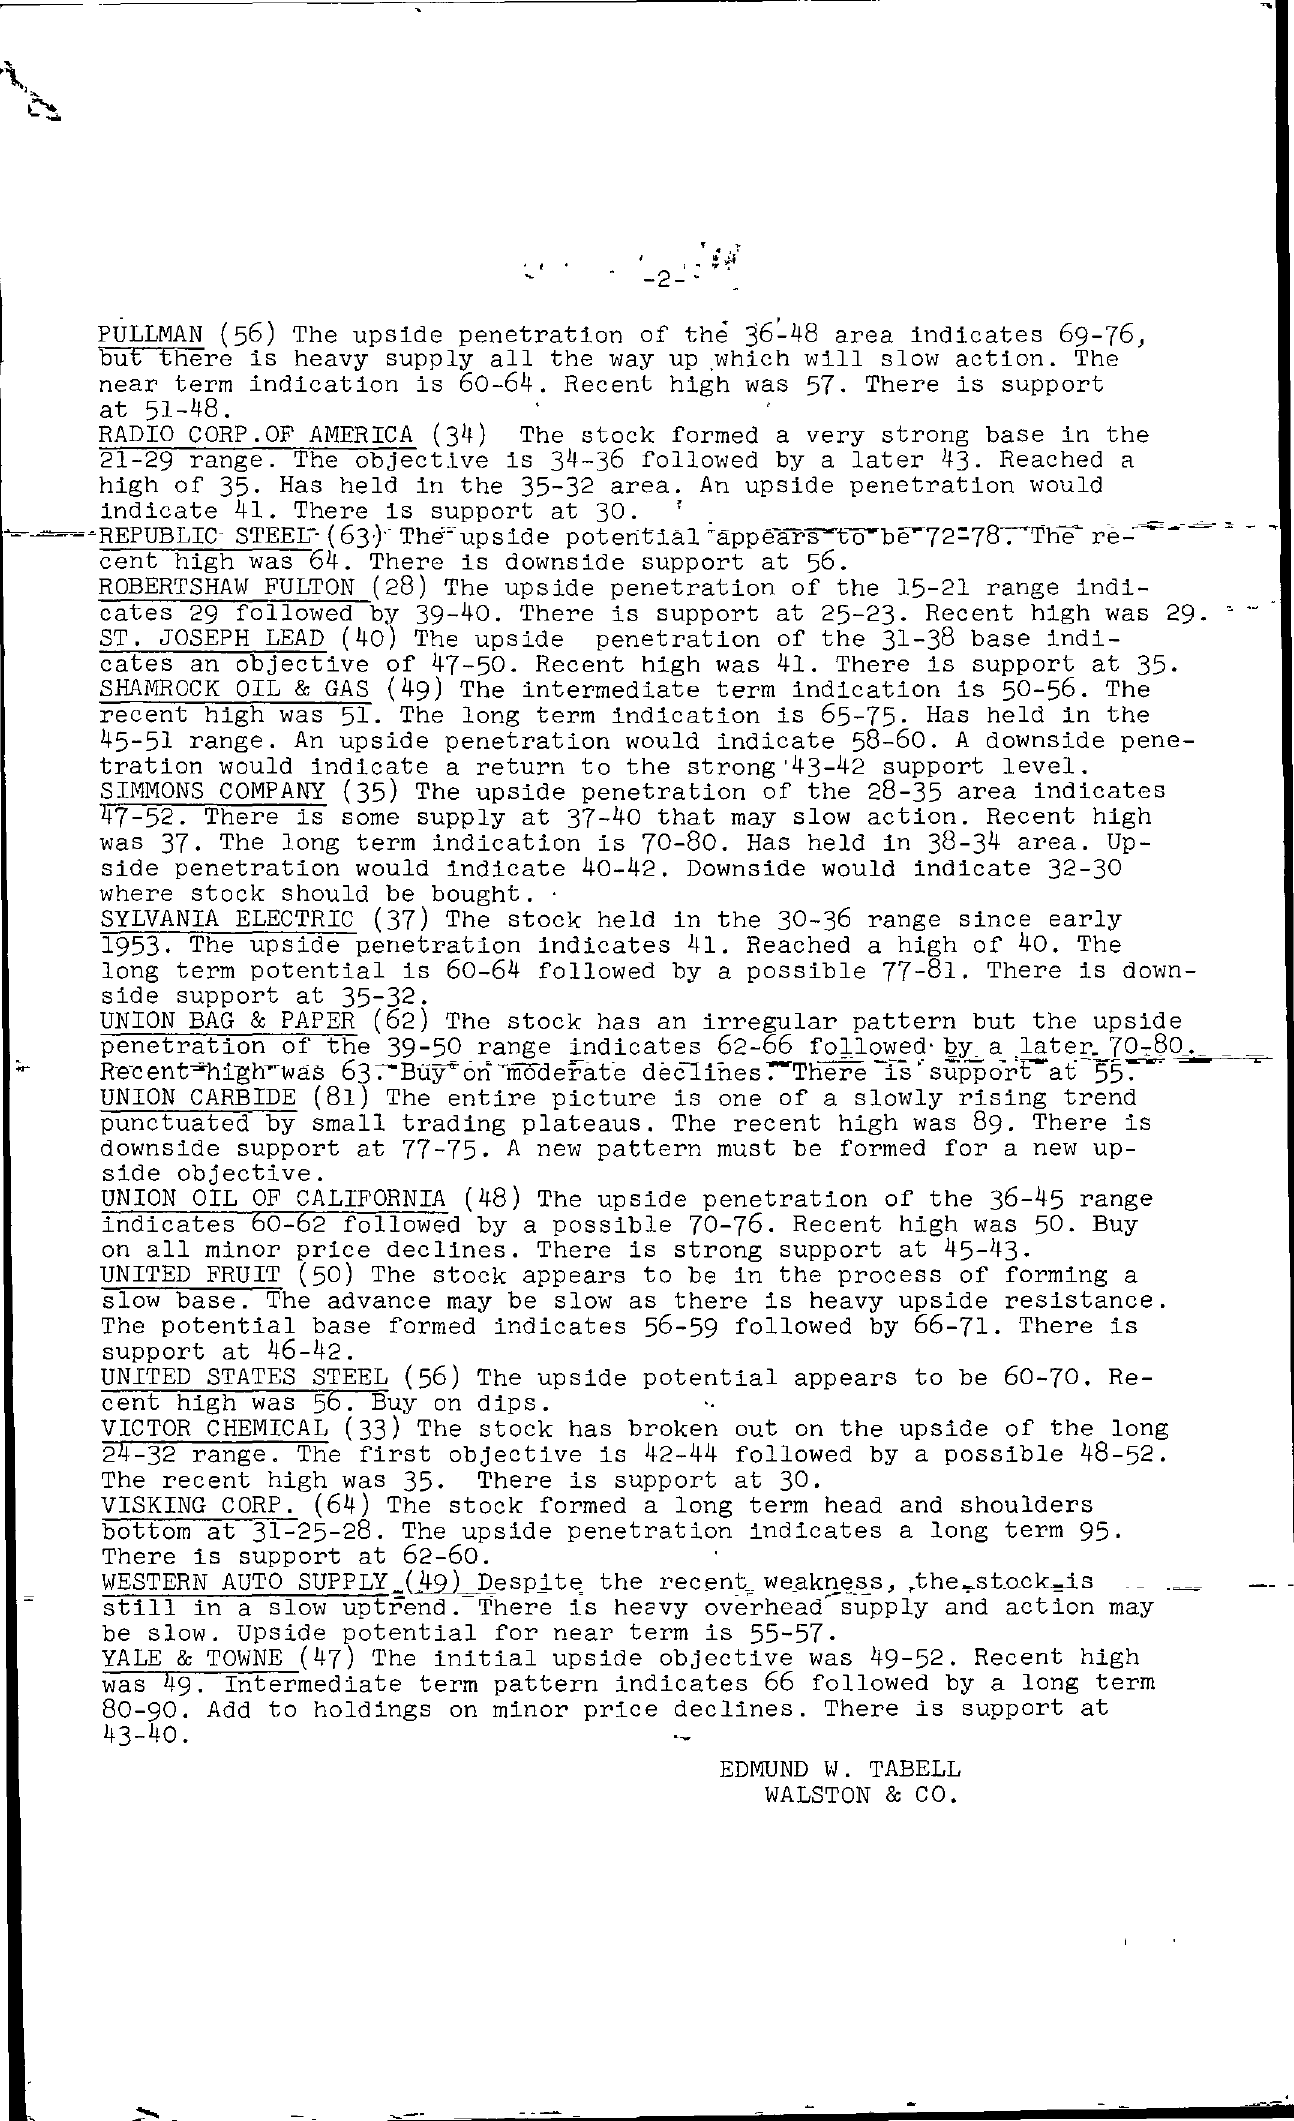 Tabell's Market Letter - September 17, 1954 page 2